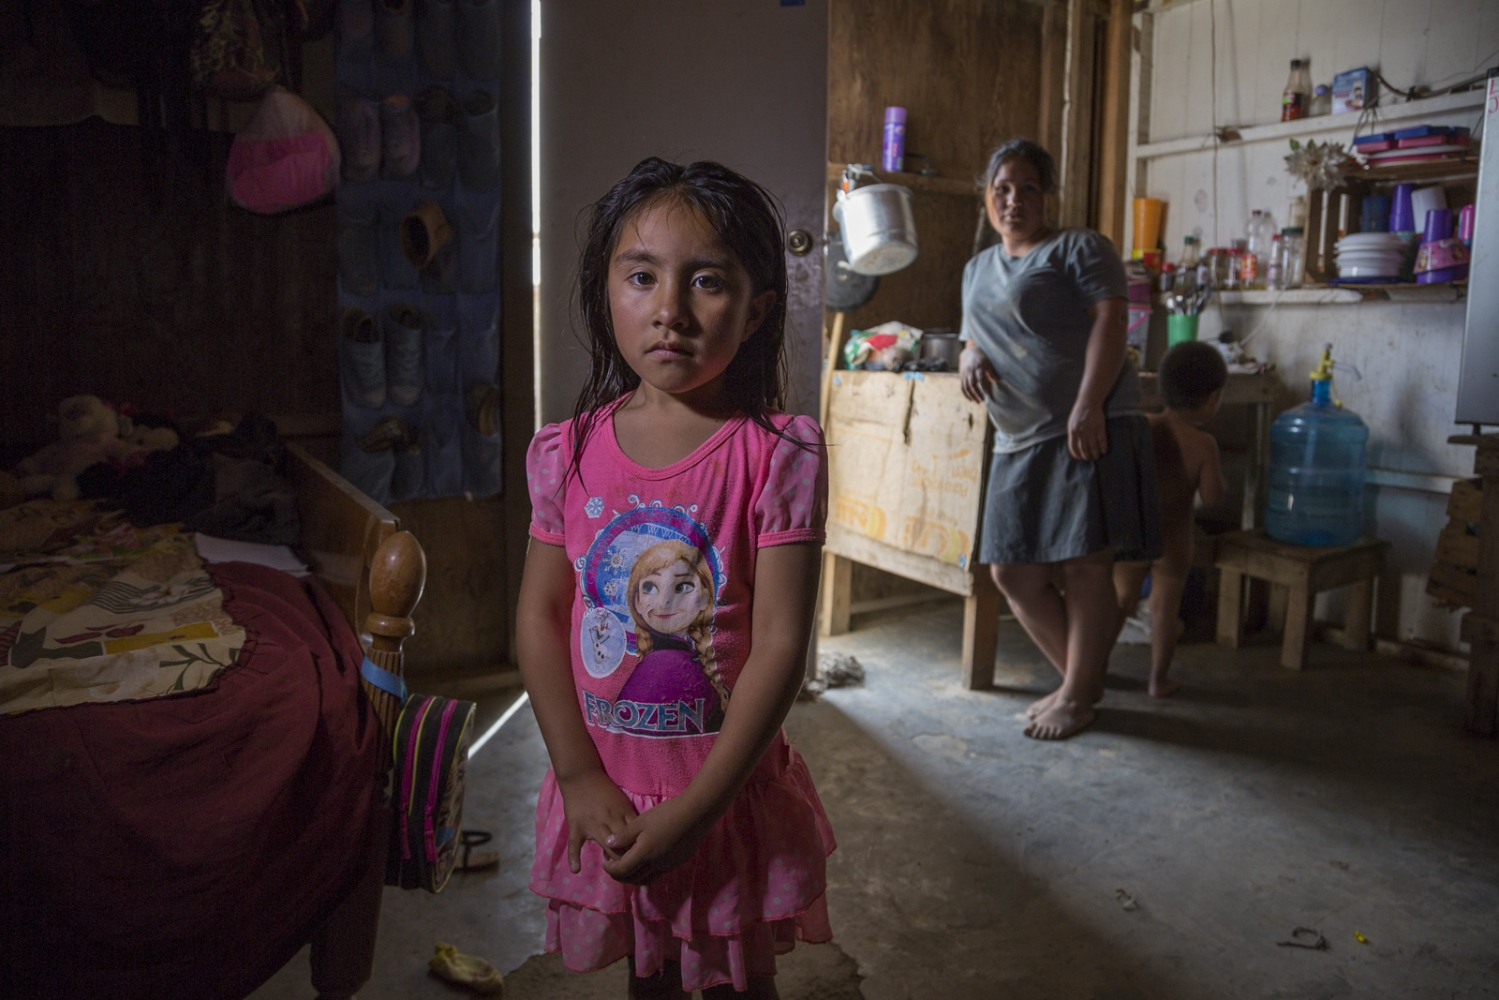 Six year-old Litzy stands with her mom Esmeralda and younger brother Jafet, 2 years old, inside their humble one-room house in Mexico's San Quintin valley. They live without running water and get electricity shared to them through a neighbor. Esmeralda's husband works in the field picking tomatoes and makes 150 pesos a day, approximately 8 US dollars.